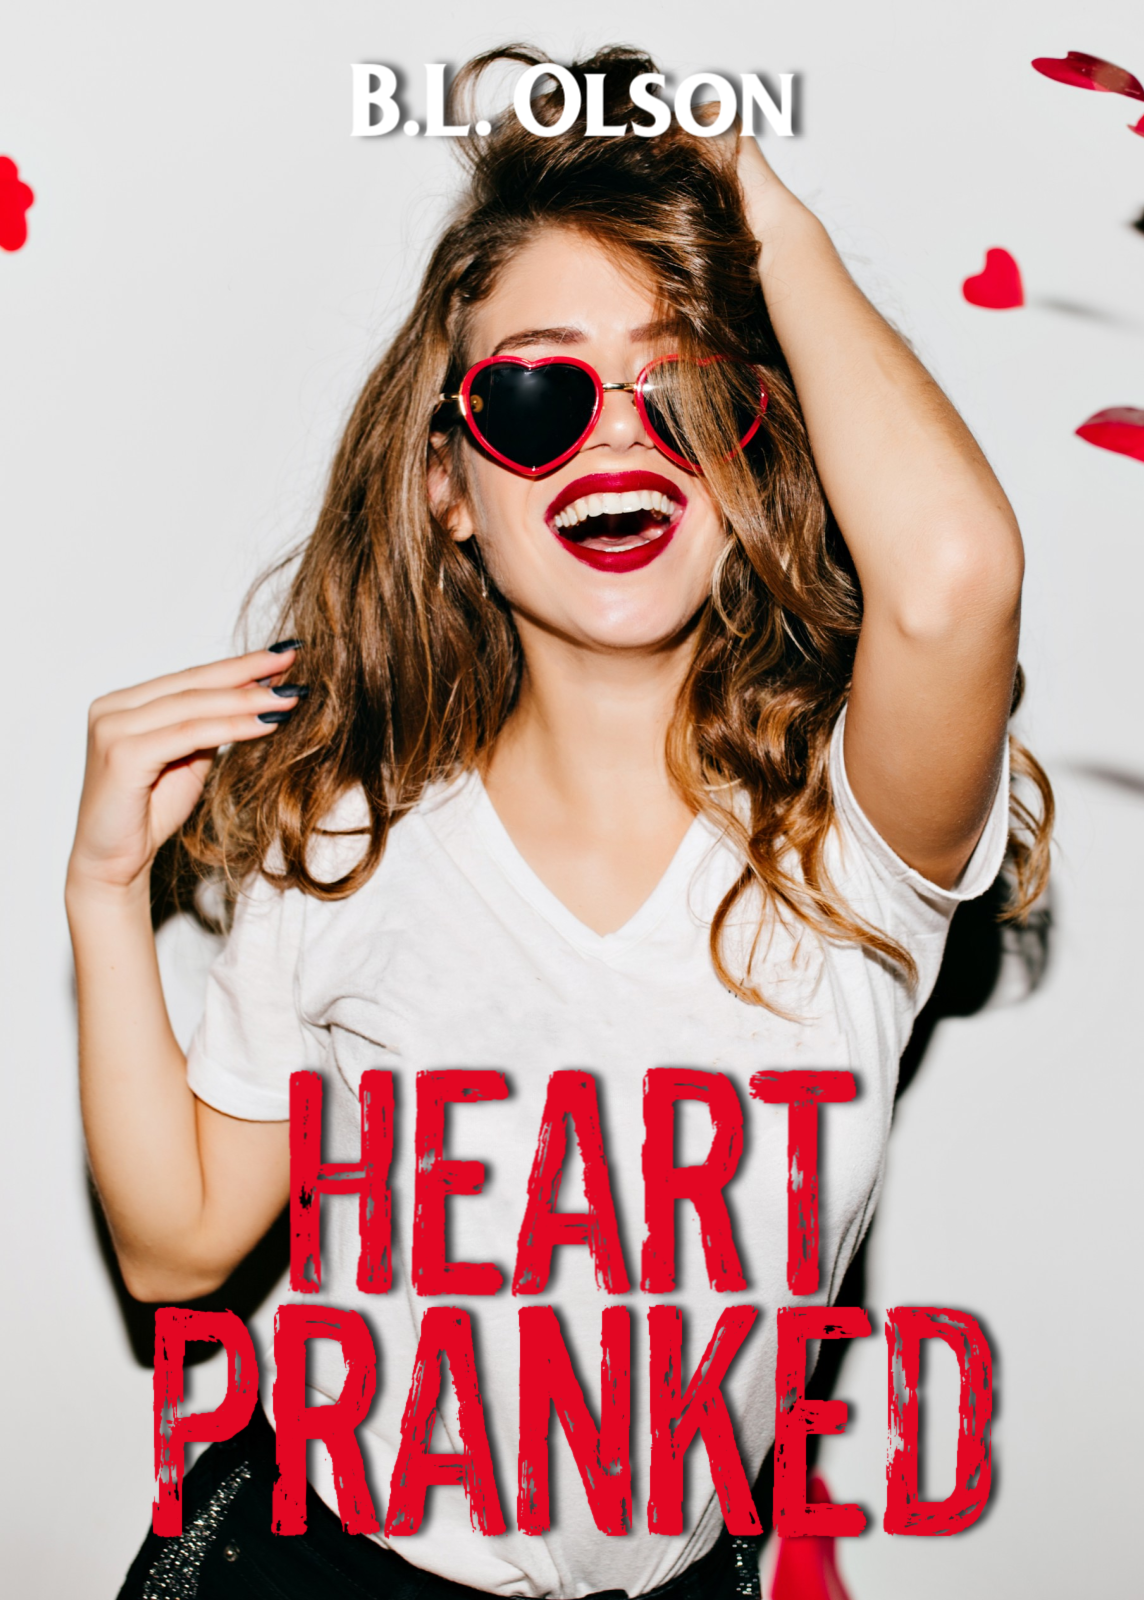 Heart Pranked Author B.L. Olson Amazon https//amzn.to